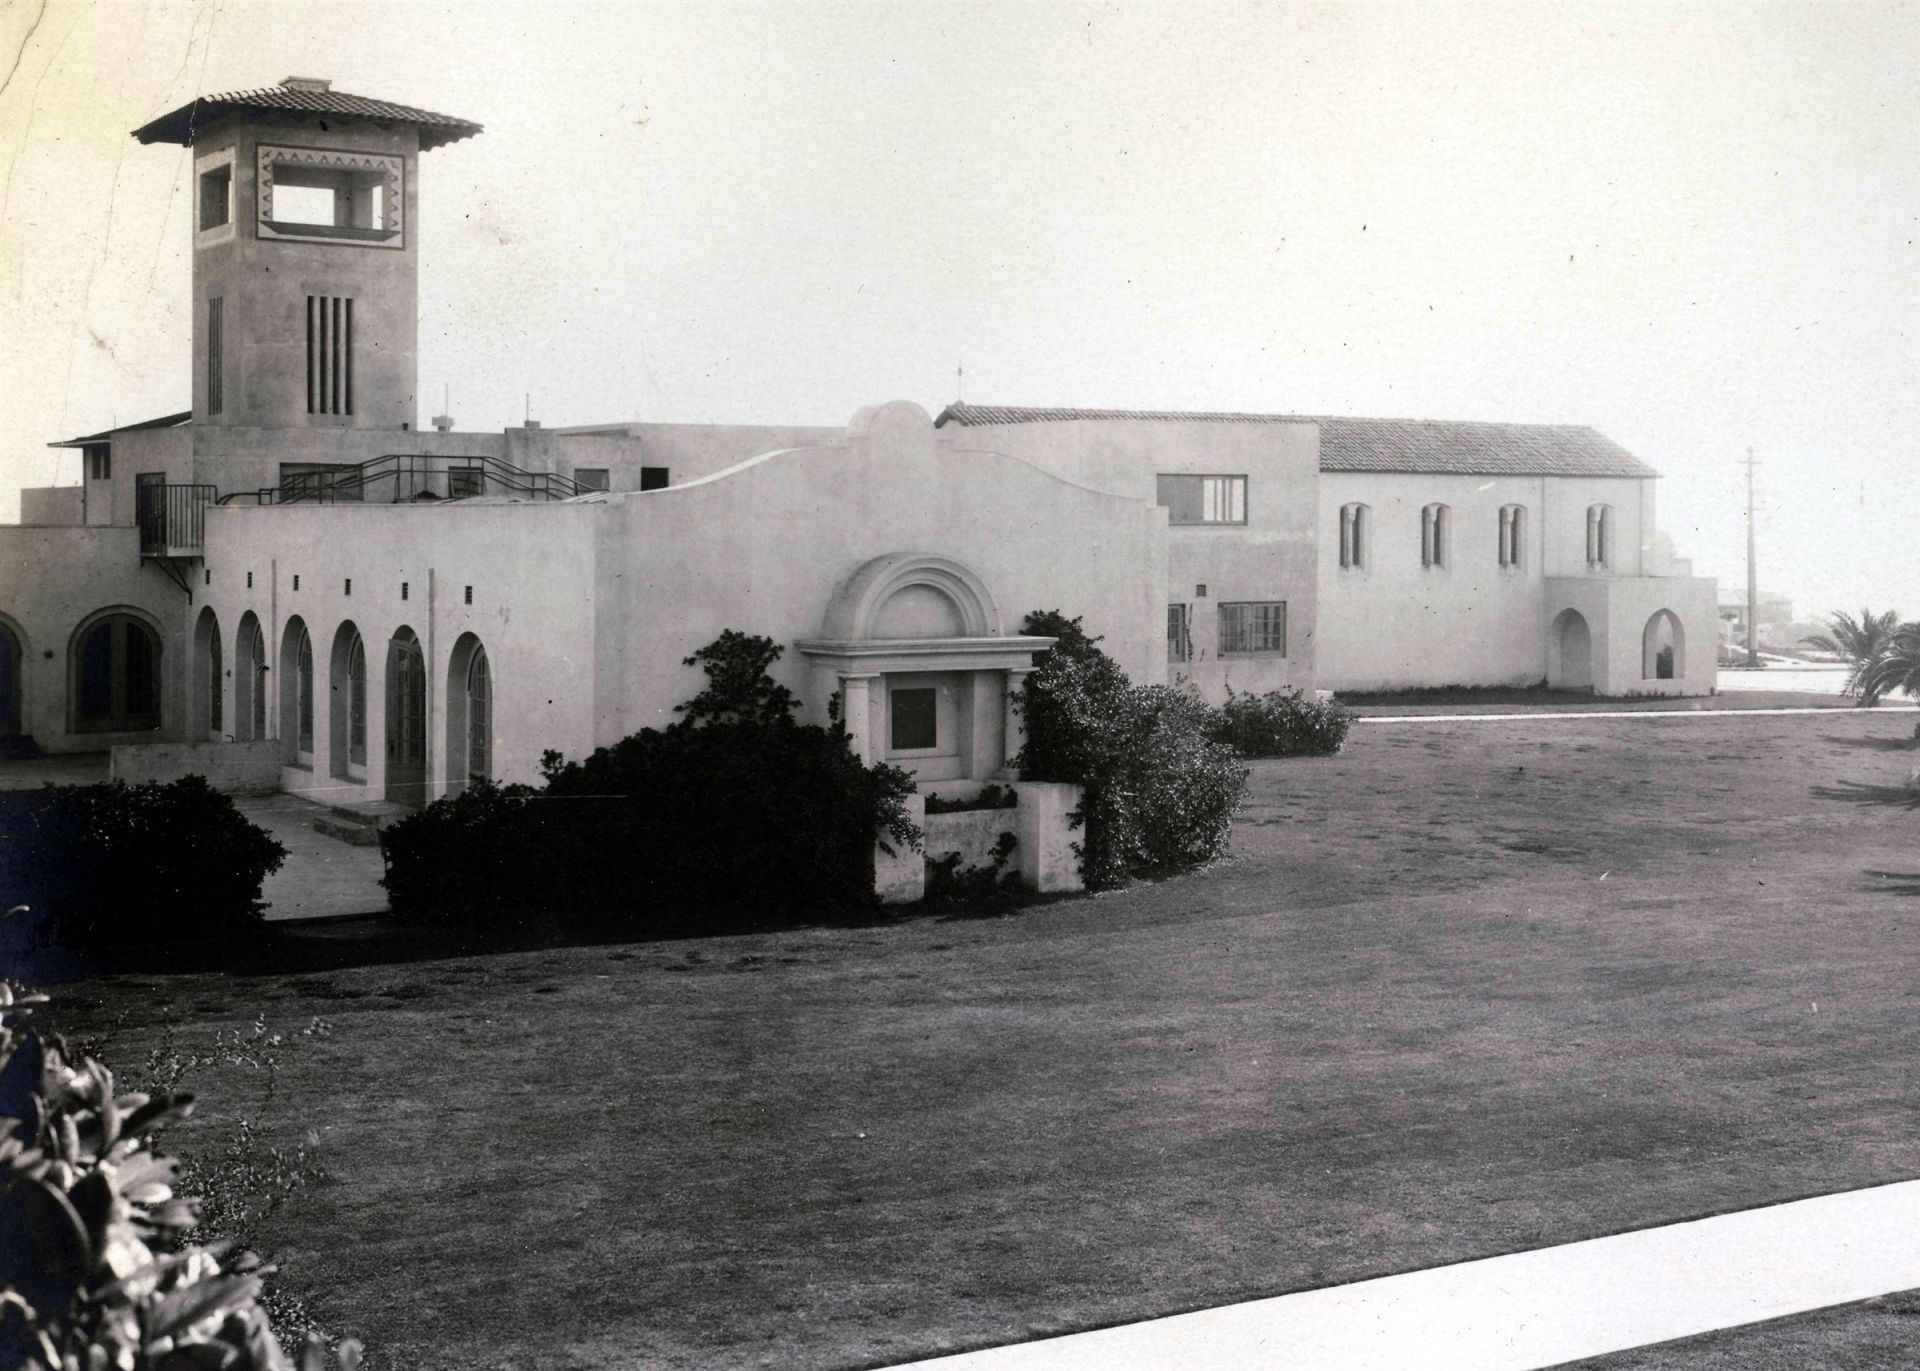 "The Scripps sisters ensured that the physical environment of The Bishop's School reflected modern and progressive ideas. They chose architect Irving Gill to build white concrete buildings that were fireproof and sanitary with nature providing decoration. Ellen Browning Scripps told a friend that ""one of the greatest delights of her life had been teaching."" She believed that schools should be ""an open door to knowledge."" The Bishop's School has remained committed to her educational ideals."